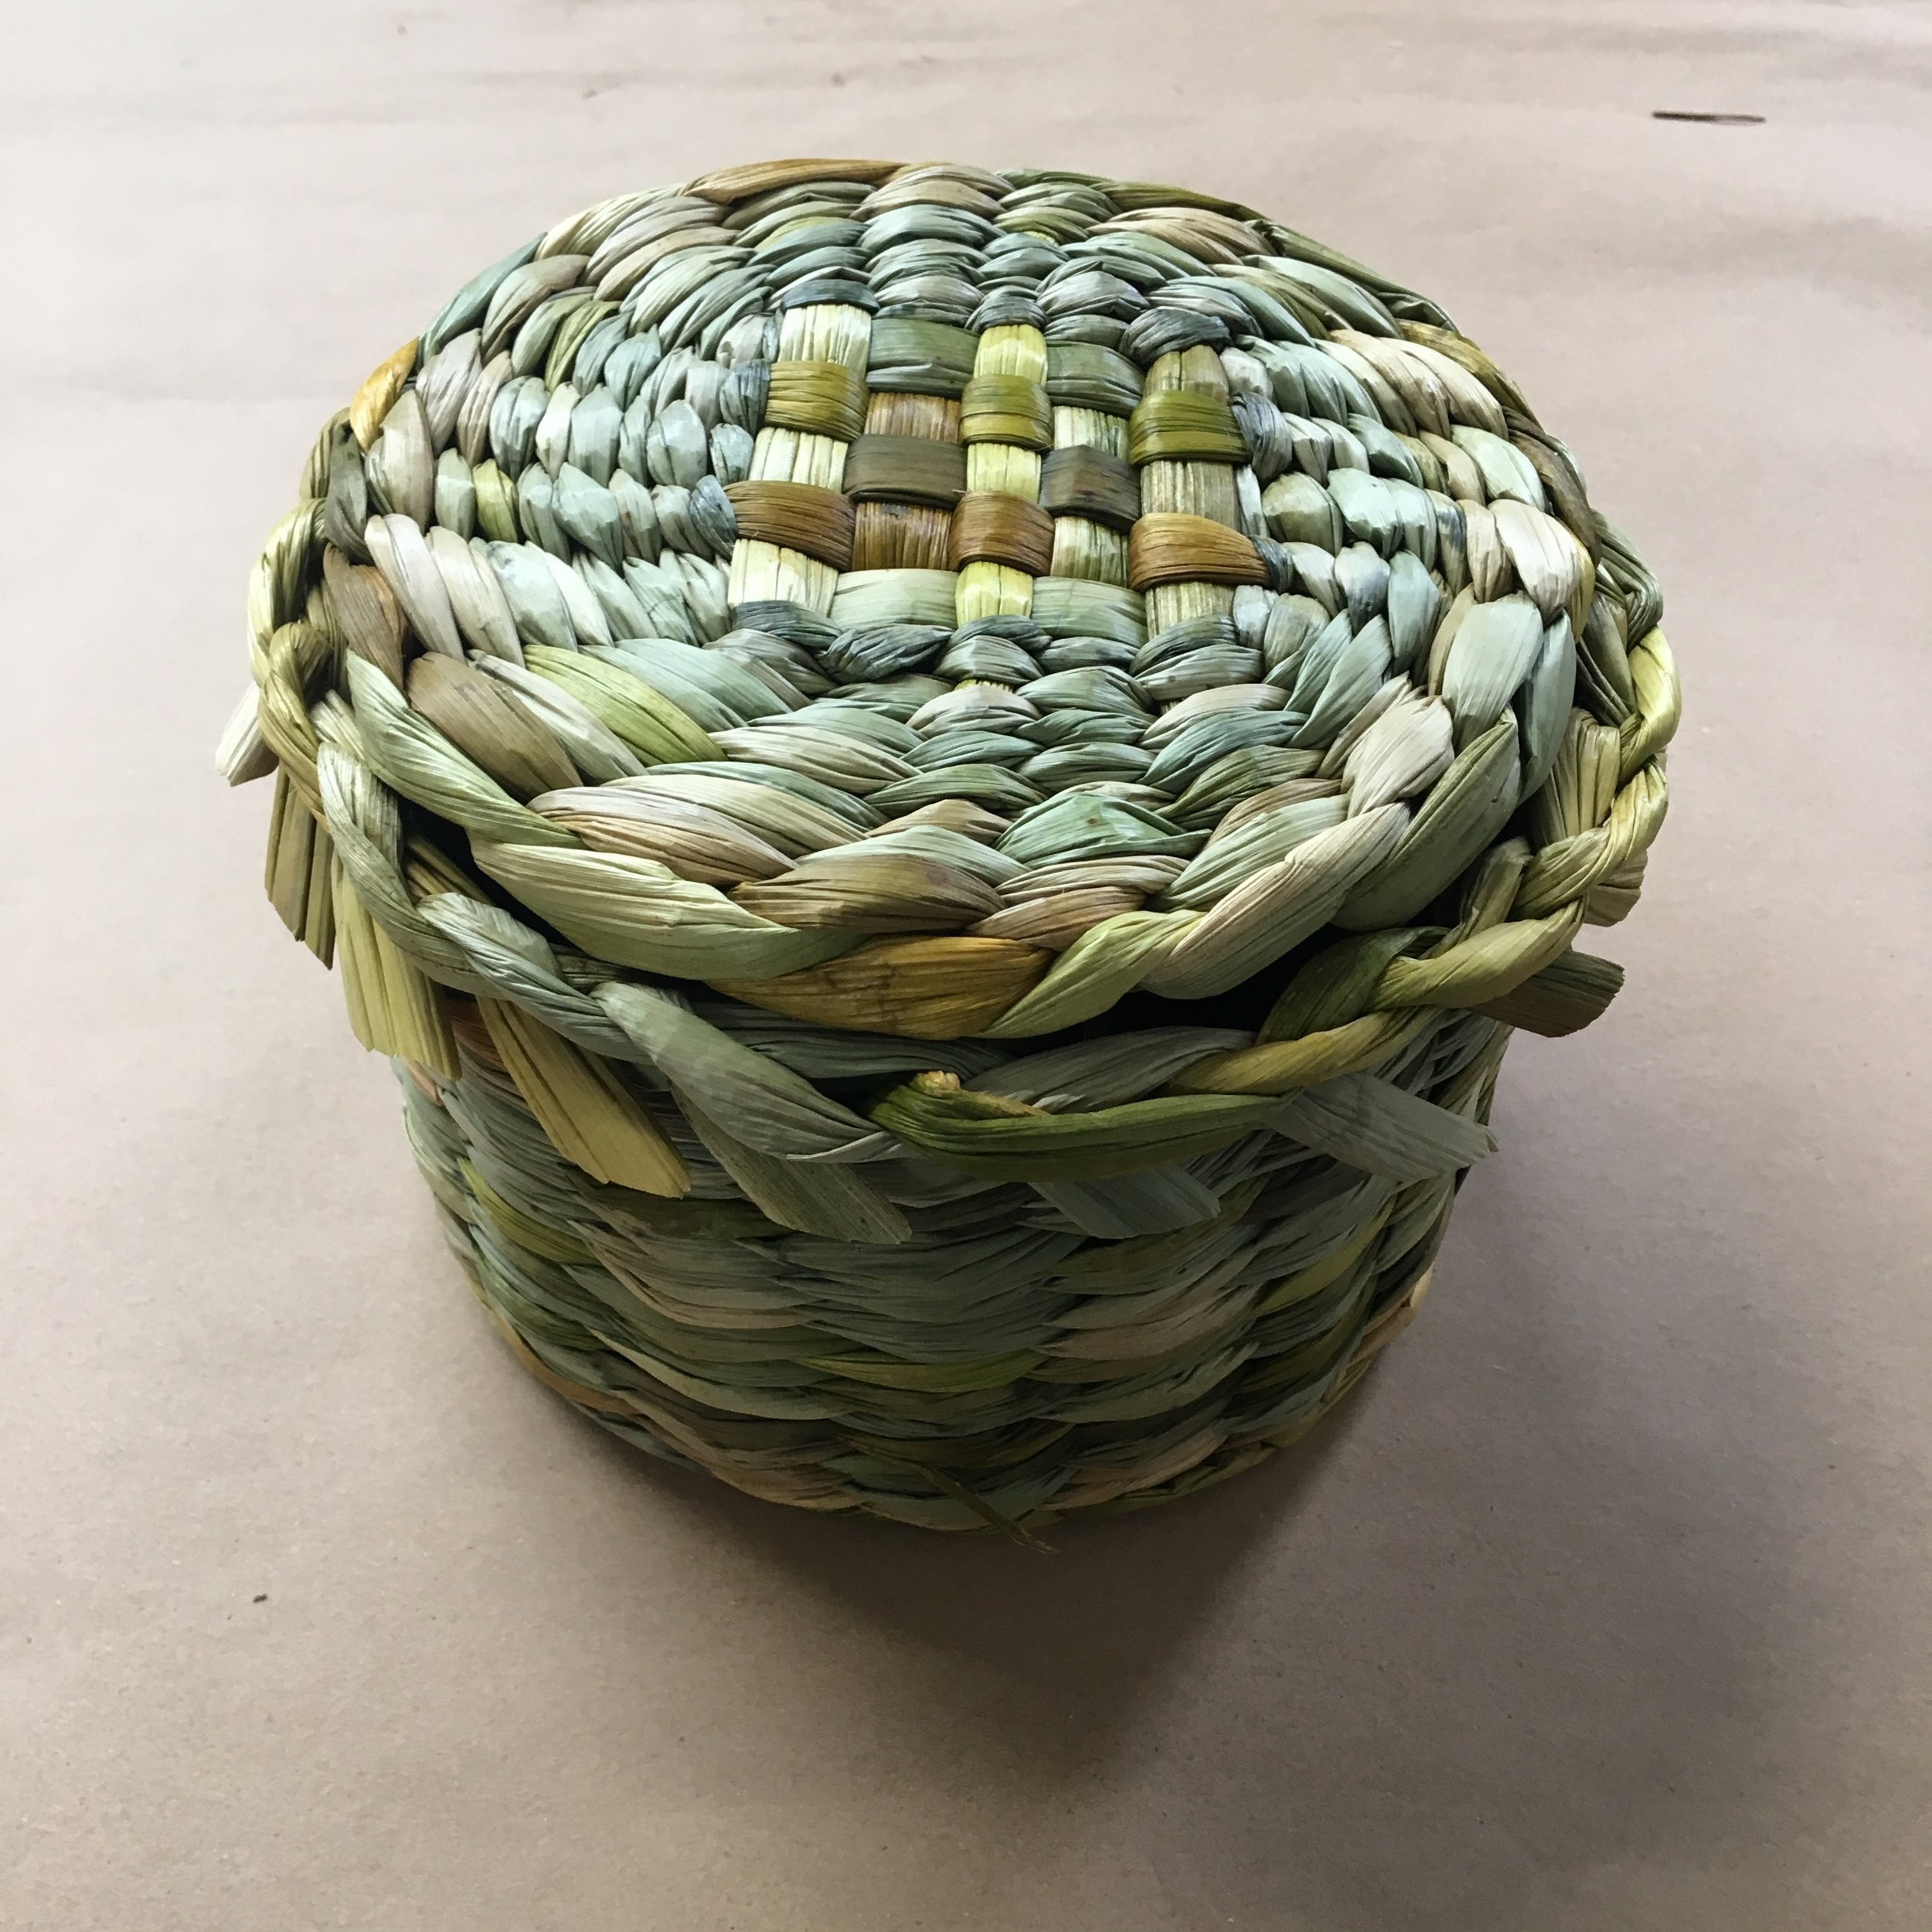 Basketmaking-9.jpg